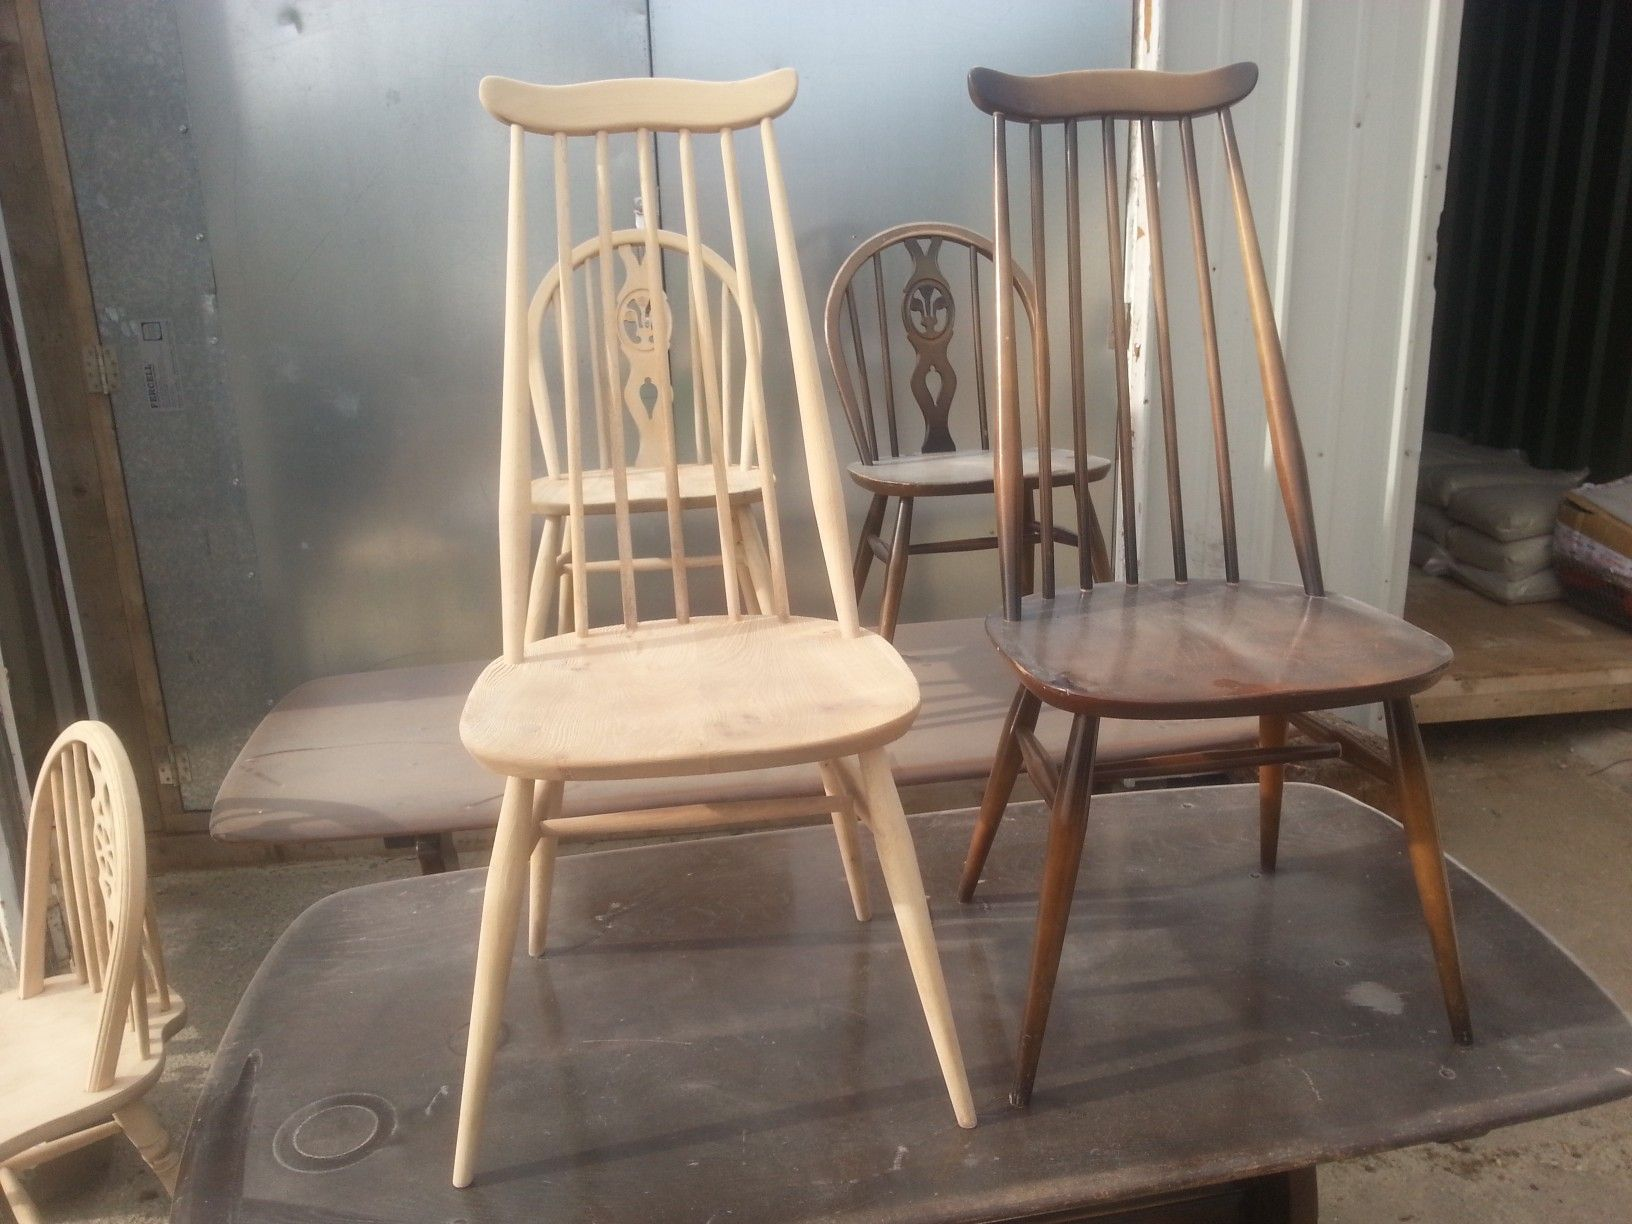 This Ercol Chair Has Been Stripped Using Soda Blasting